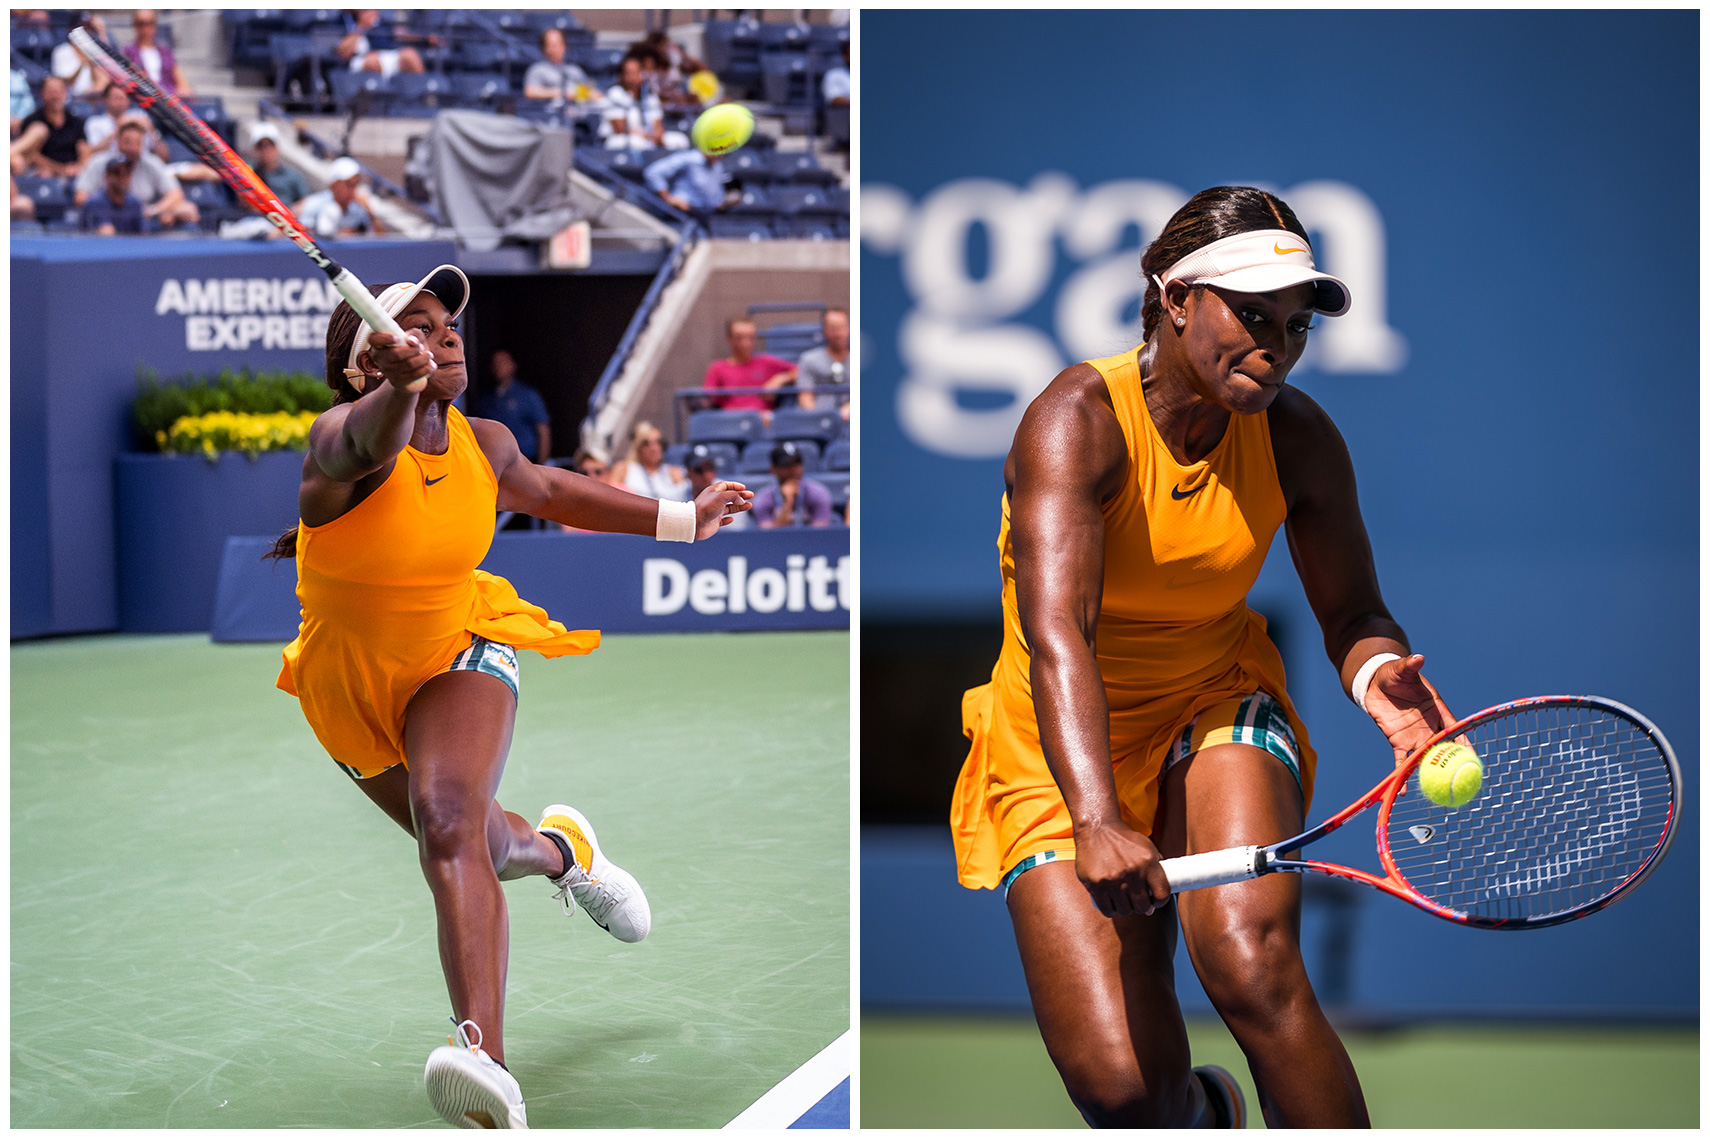 sloane-stephens-action-b-us-open-tennis-mercedes-benz-ambassador